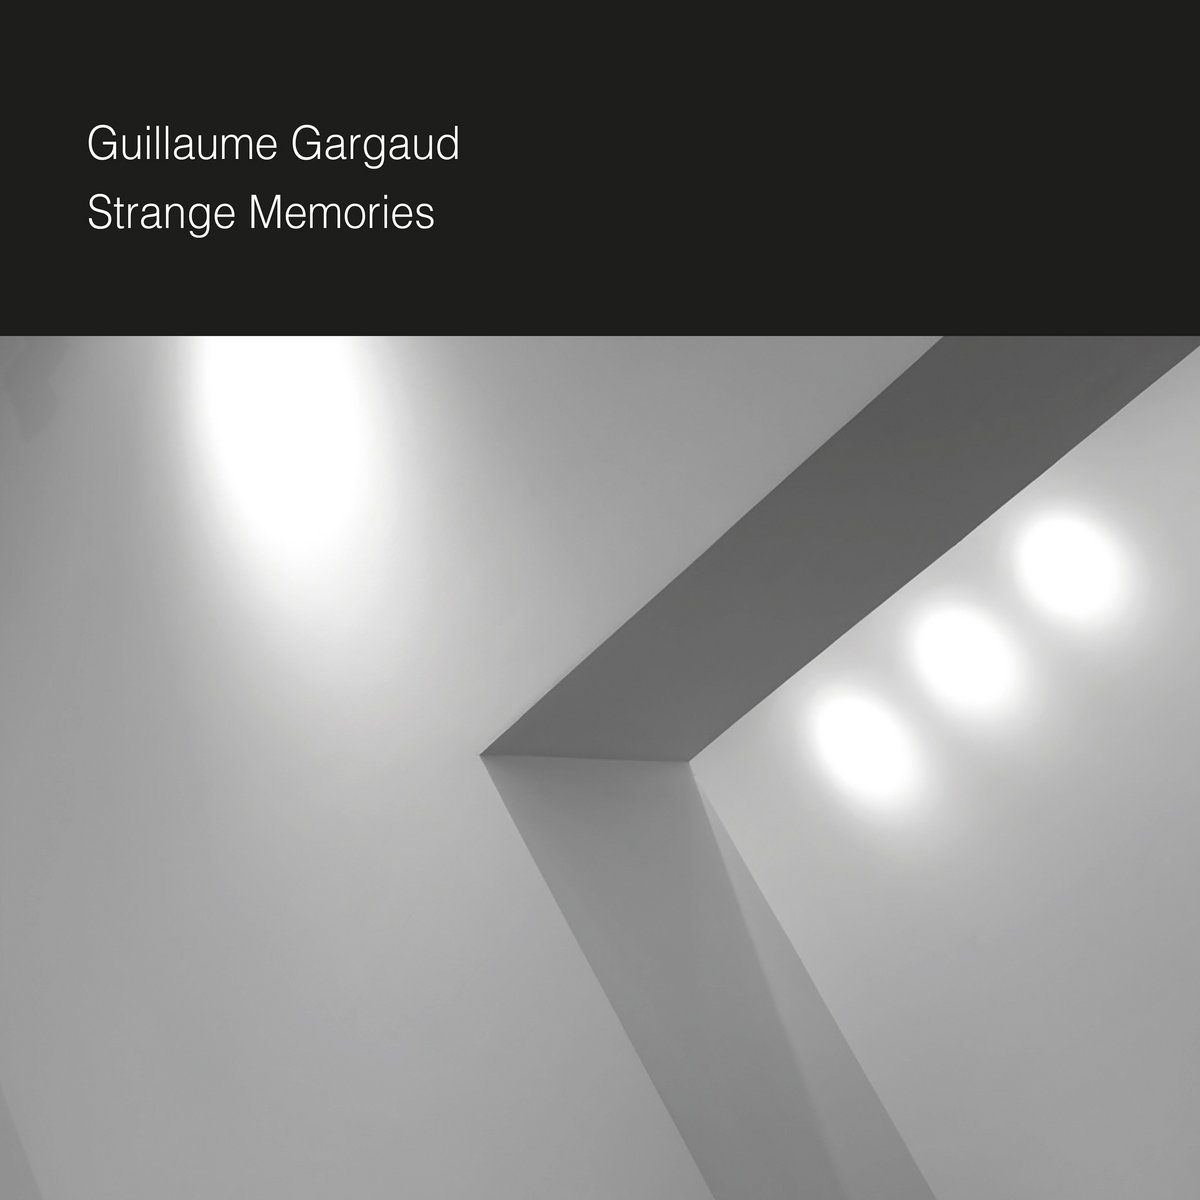 Guillaume Gargaud - Strange memories